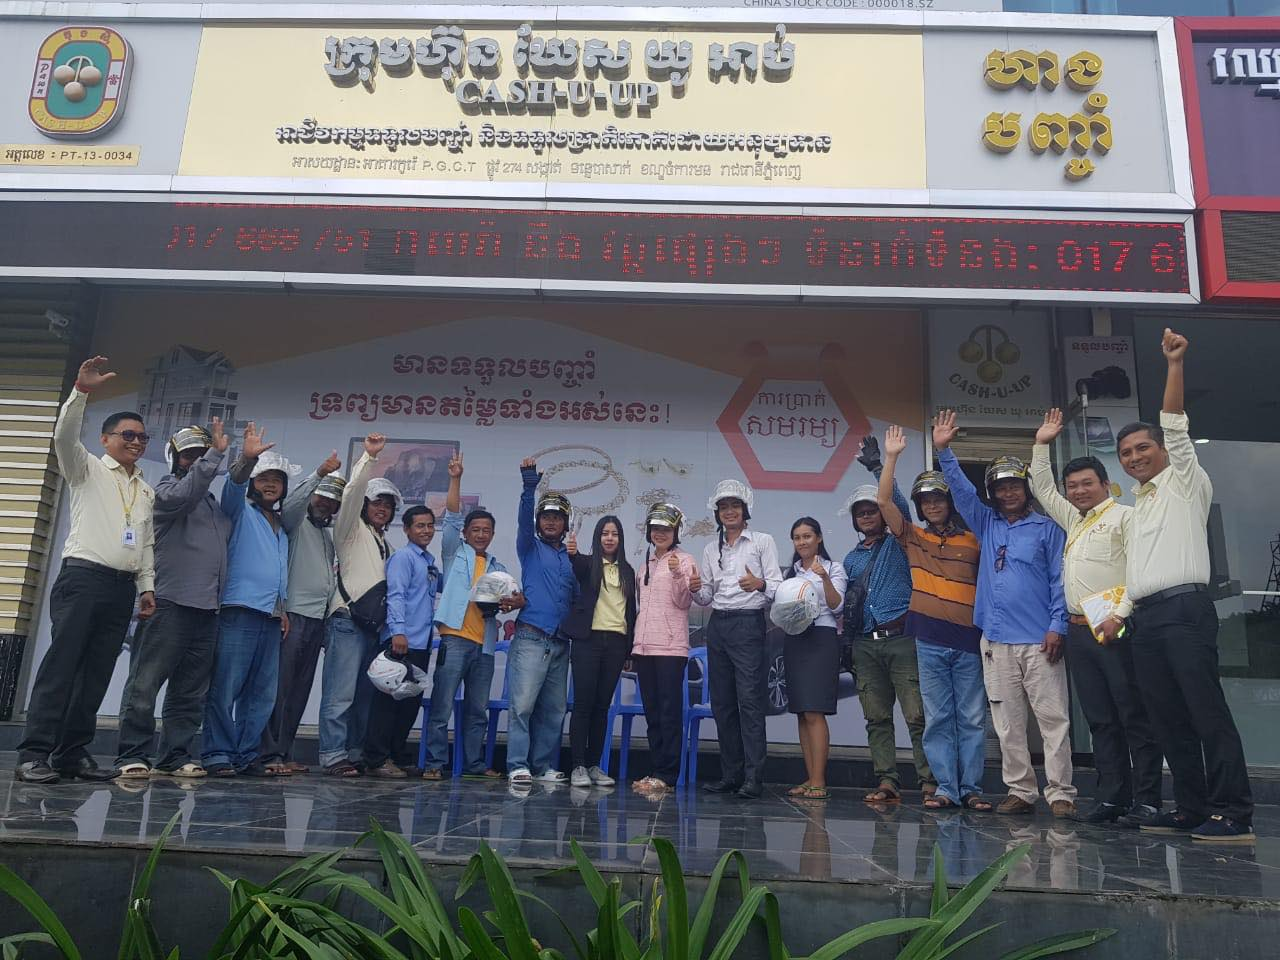 Cash-U-Up team up to promote road safety for everyone in Cambodia